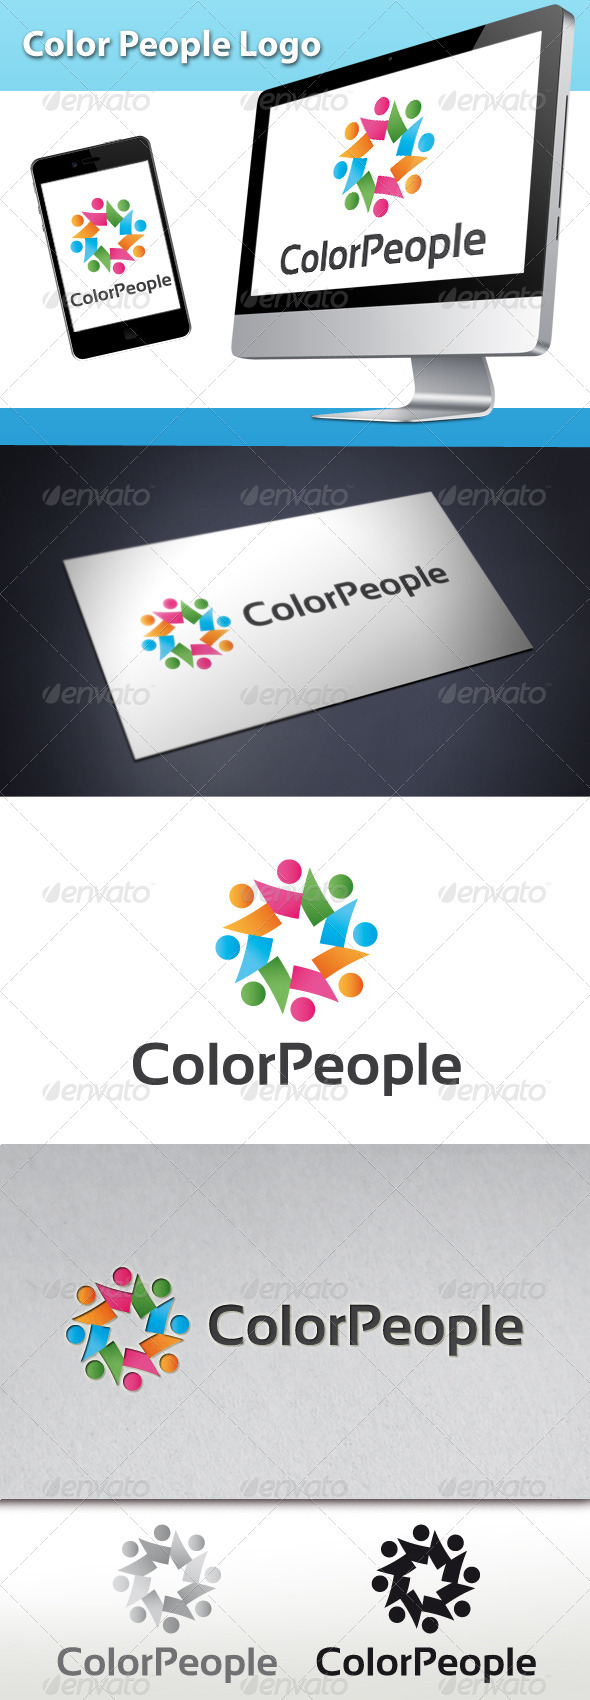 GraphicRiver Color People Logo 3525144